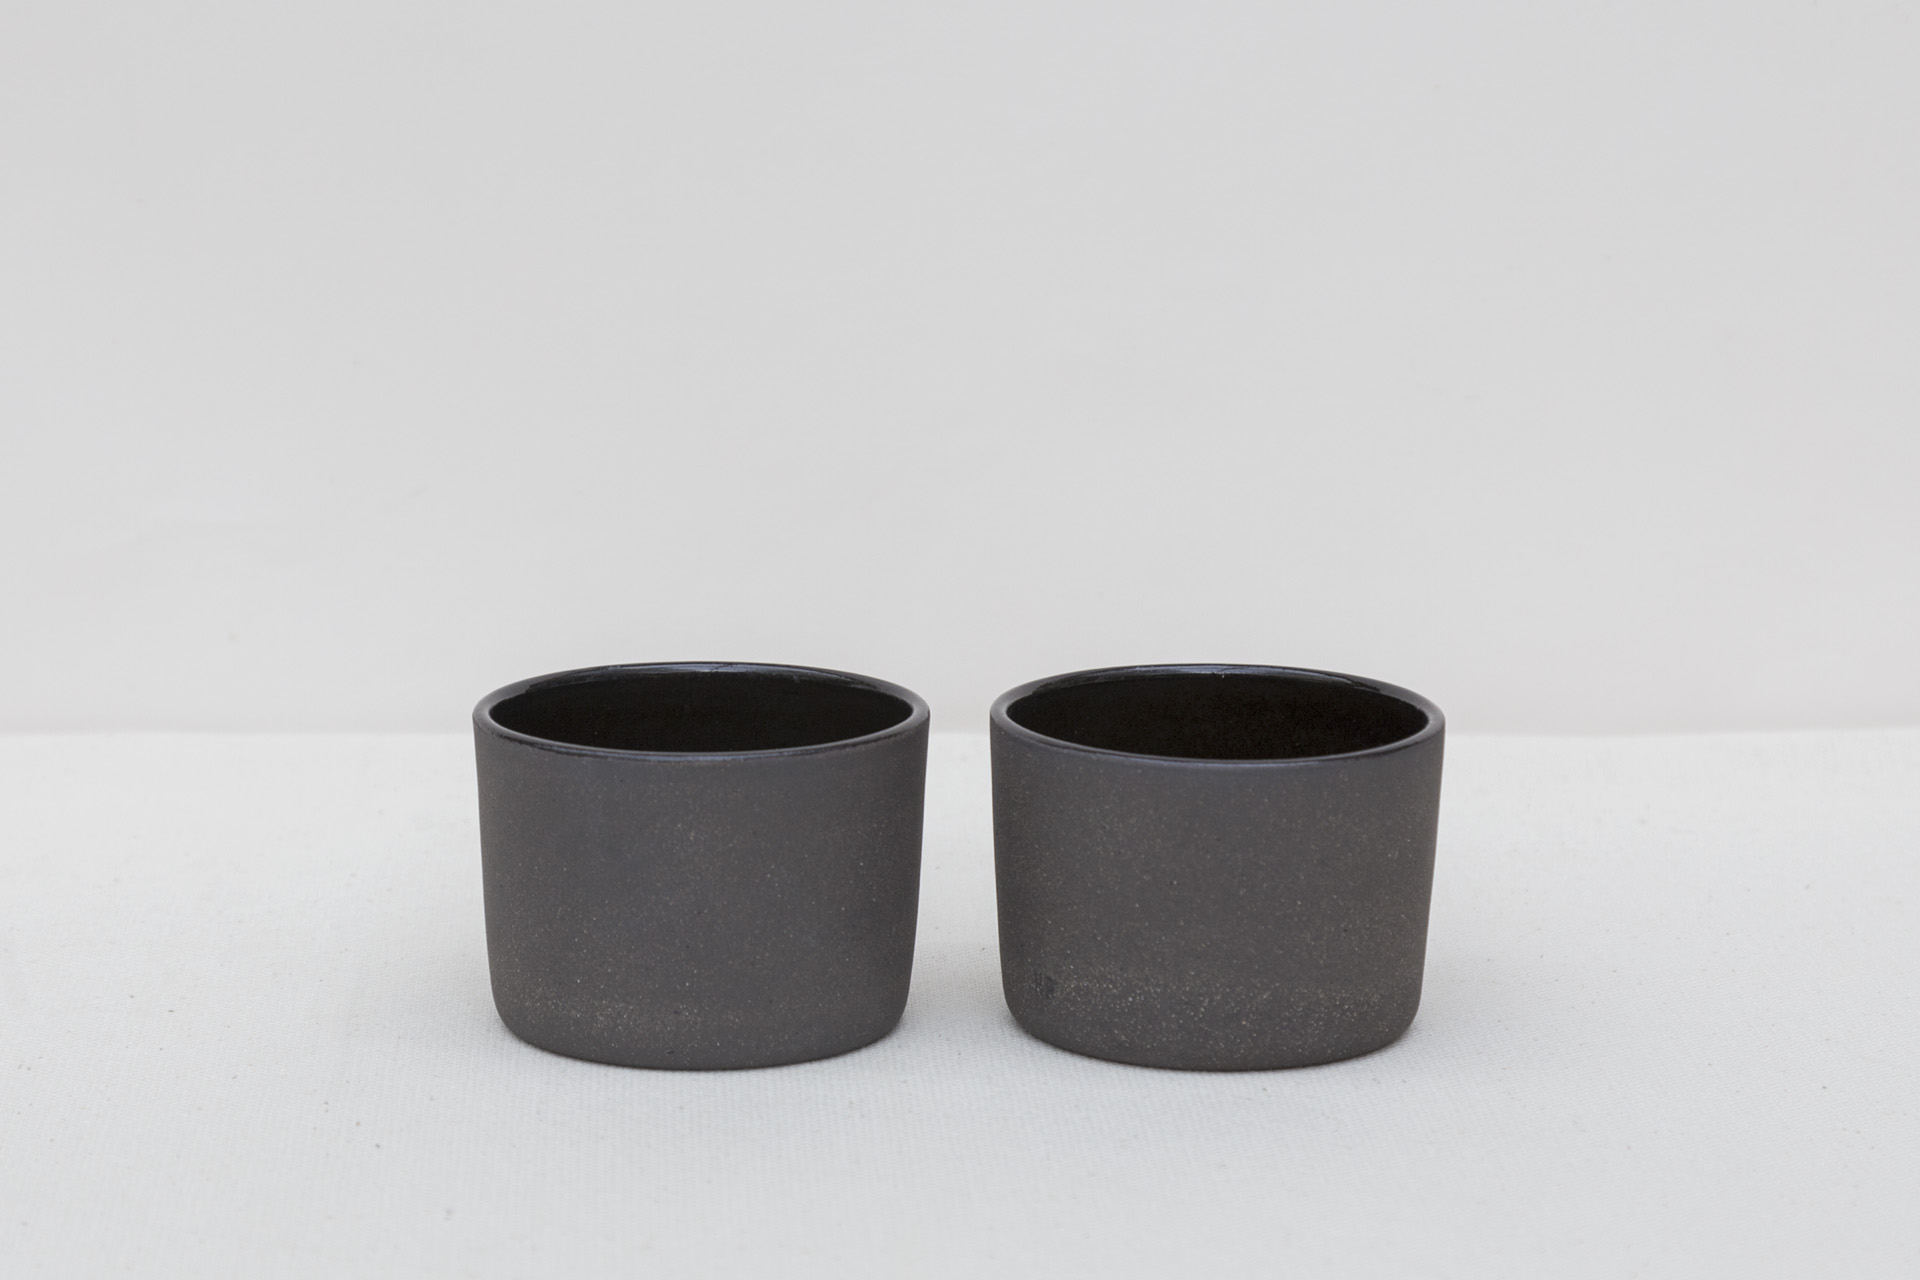 Black Cocoa Wide Espresso Cups 1 | Set of 2